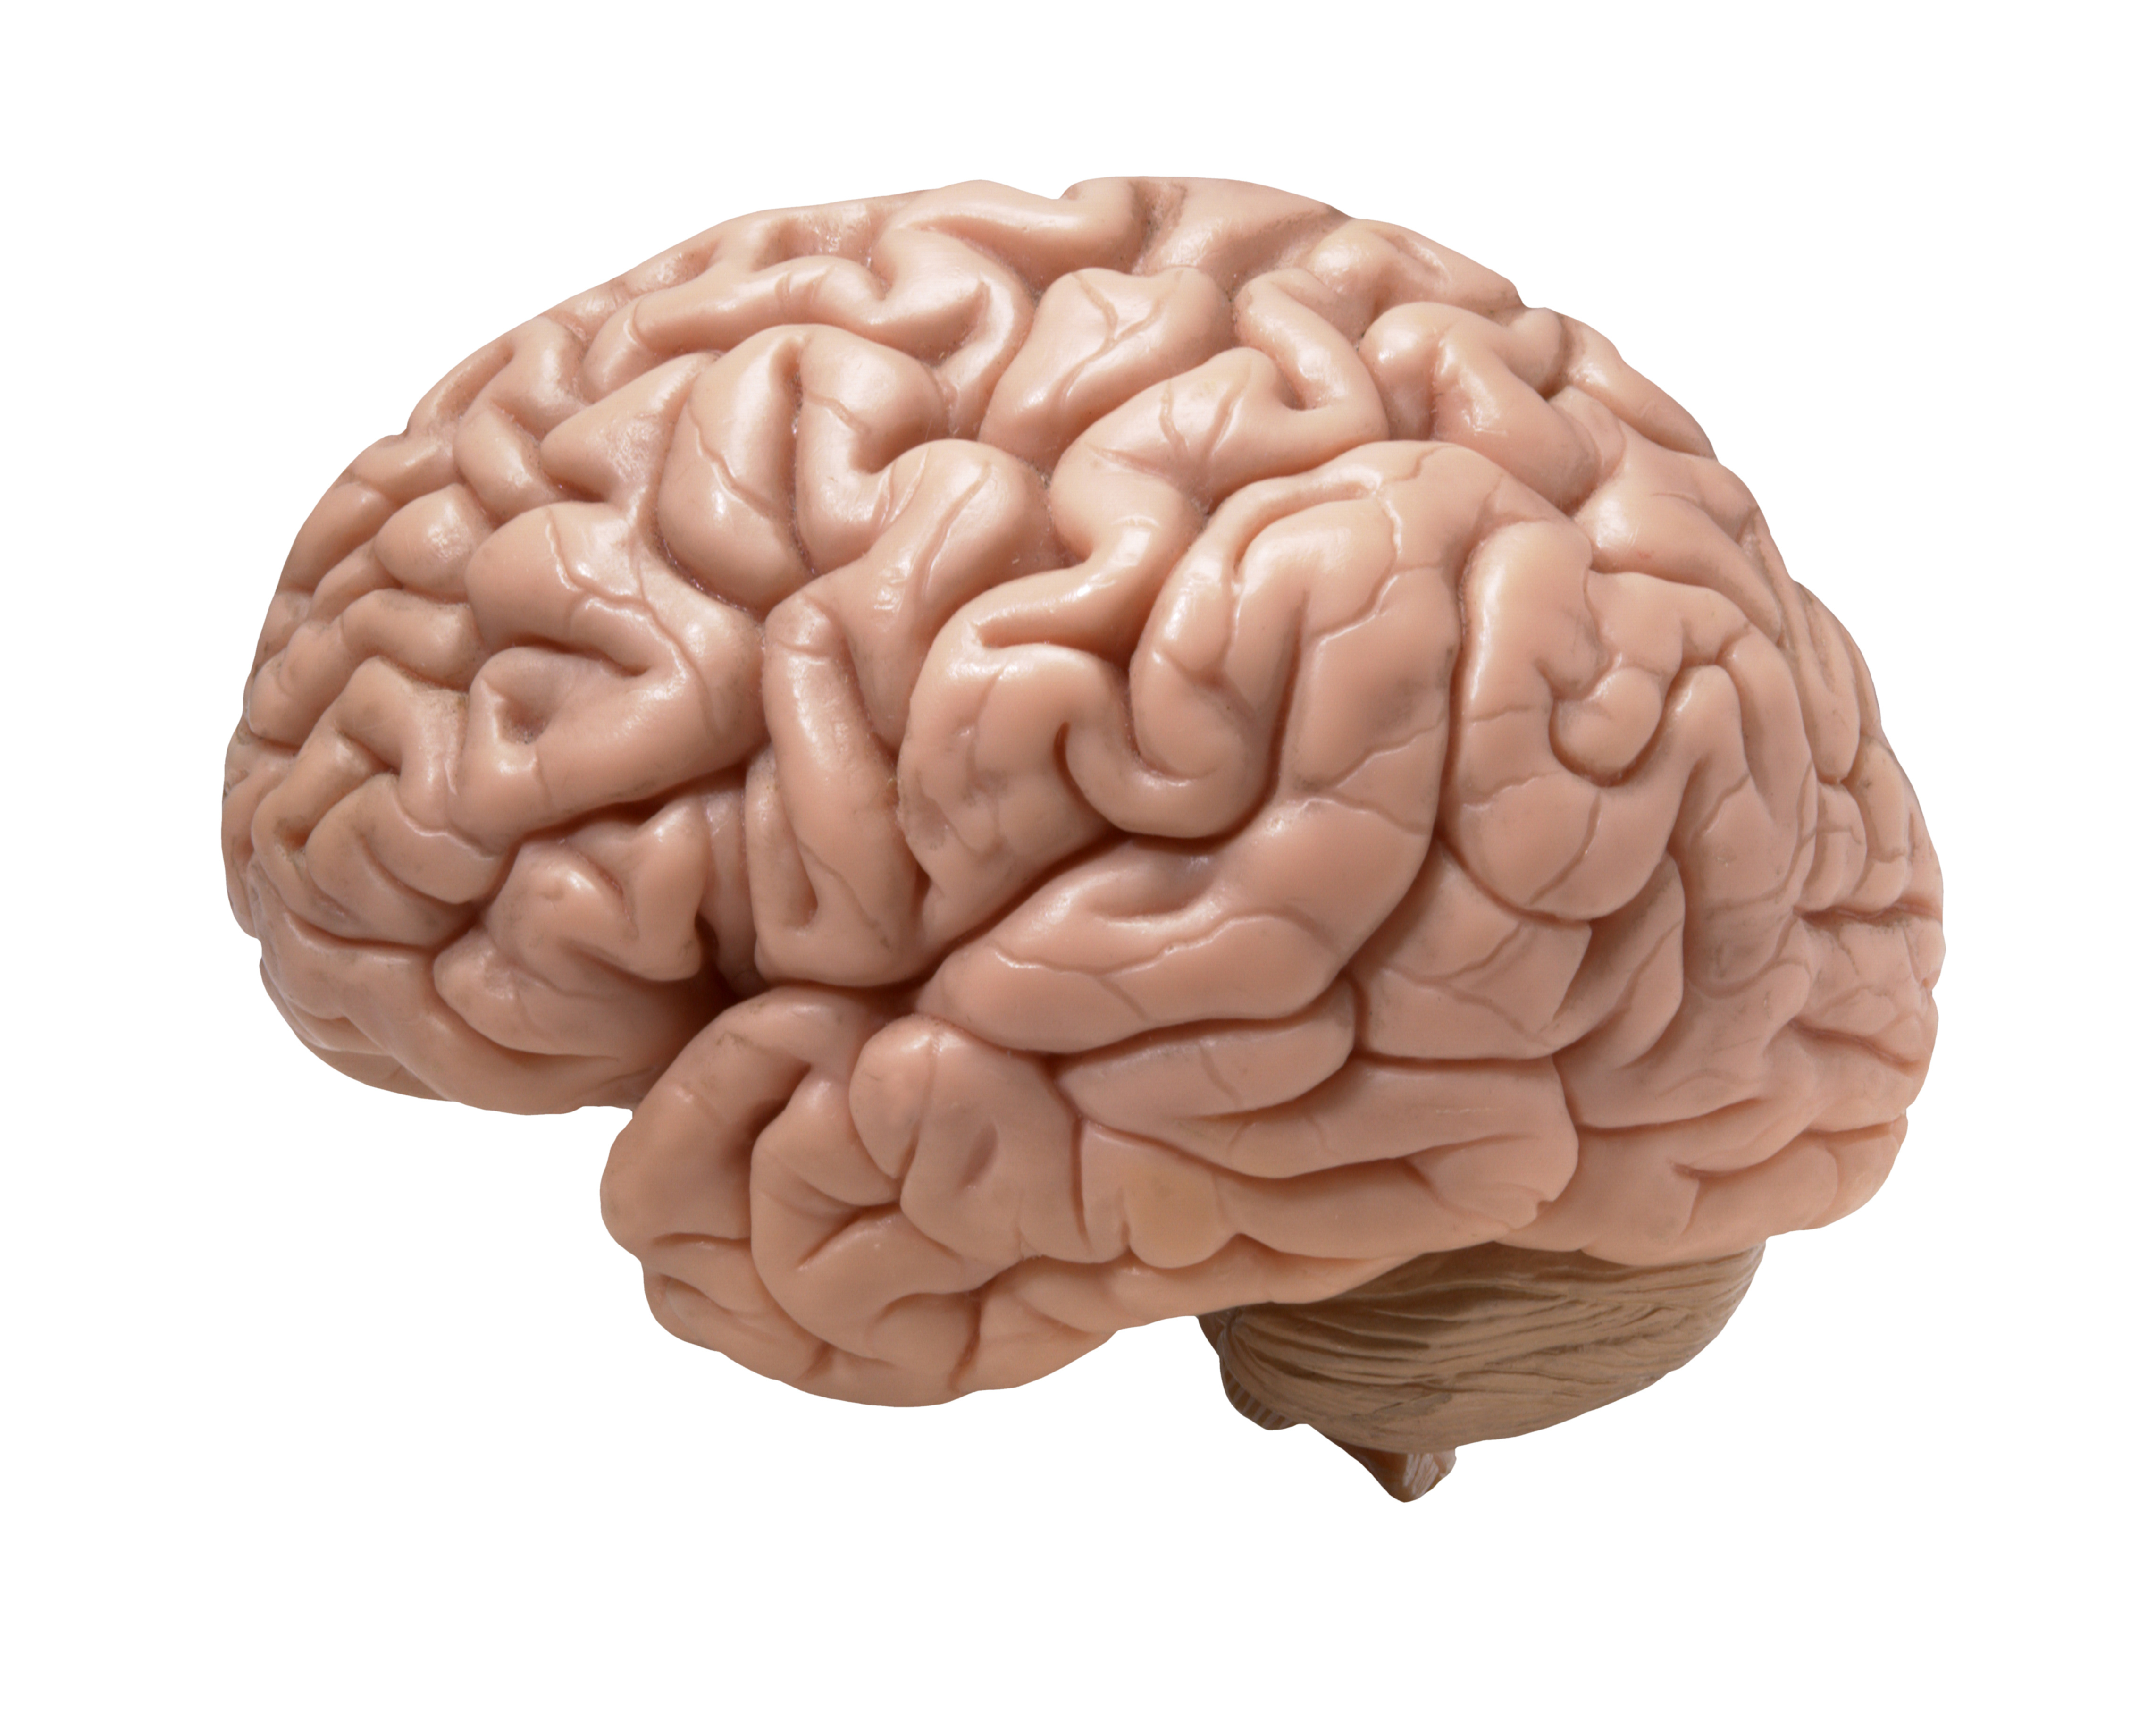 methods used to study the brain Erps are used extensively to study the time course of higher-level processes in the human brain, such as perception and attention erps are typically small fluctuations produced by the processing of a sensory stimulus or motor events.